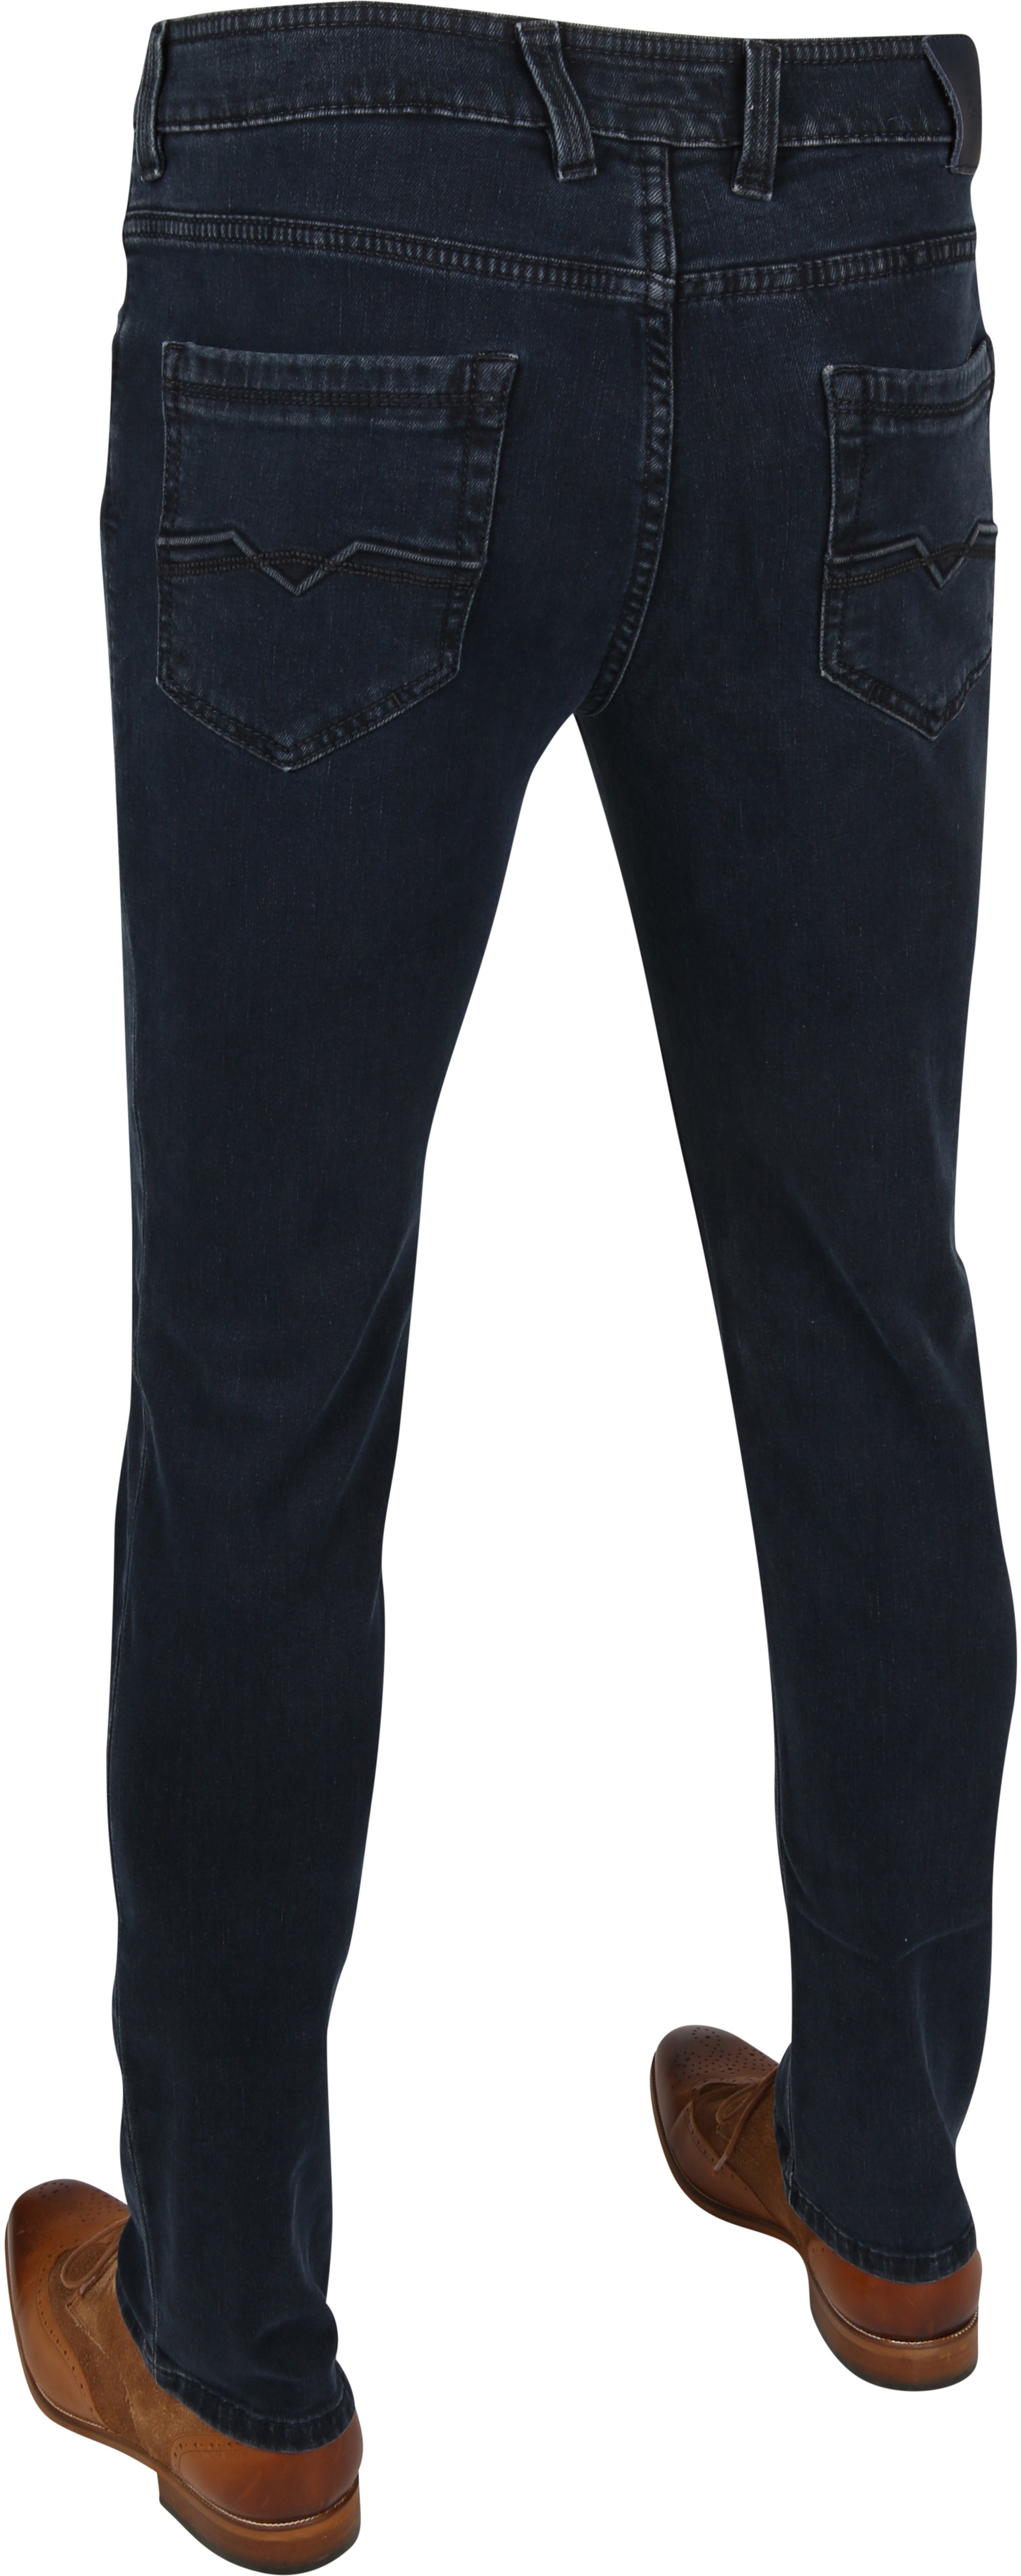 Gardeur Batu Jeans Clean Navy photo 2